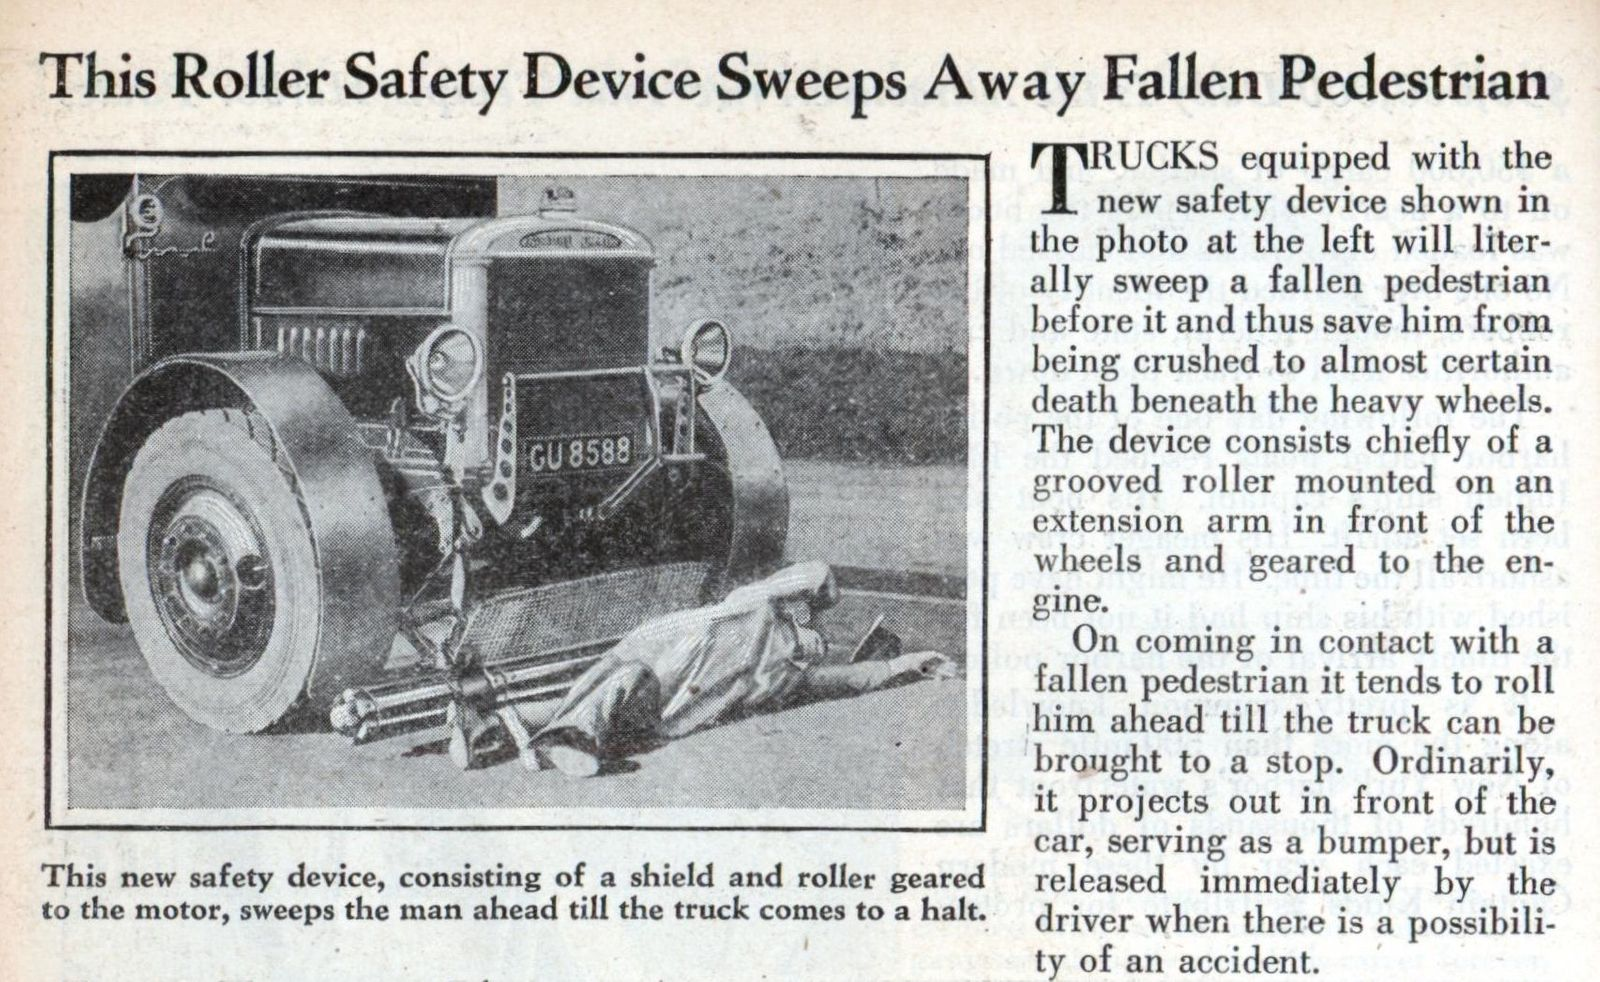 Roller Safety Device